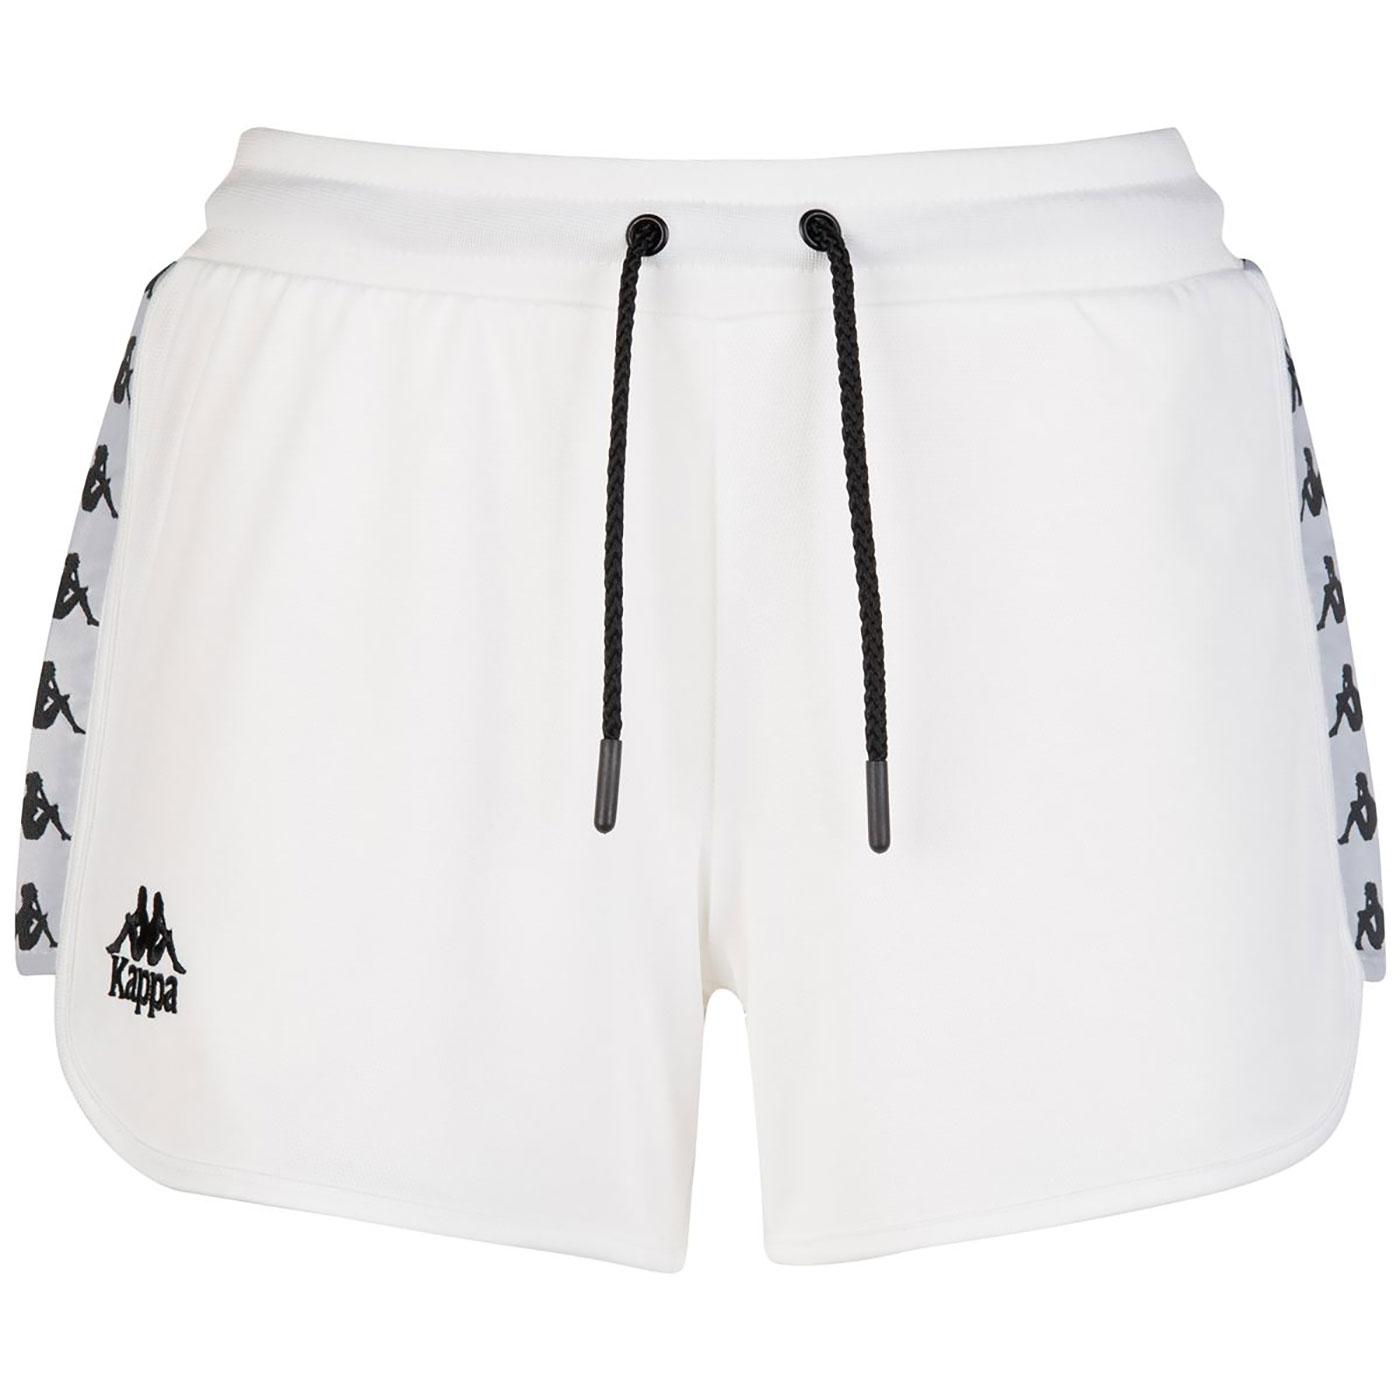 Anguy KAPPA Womans 222 Banda Retro Runner shorts W